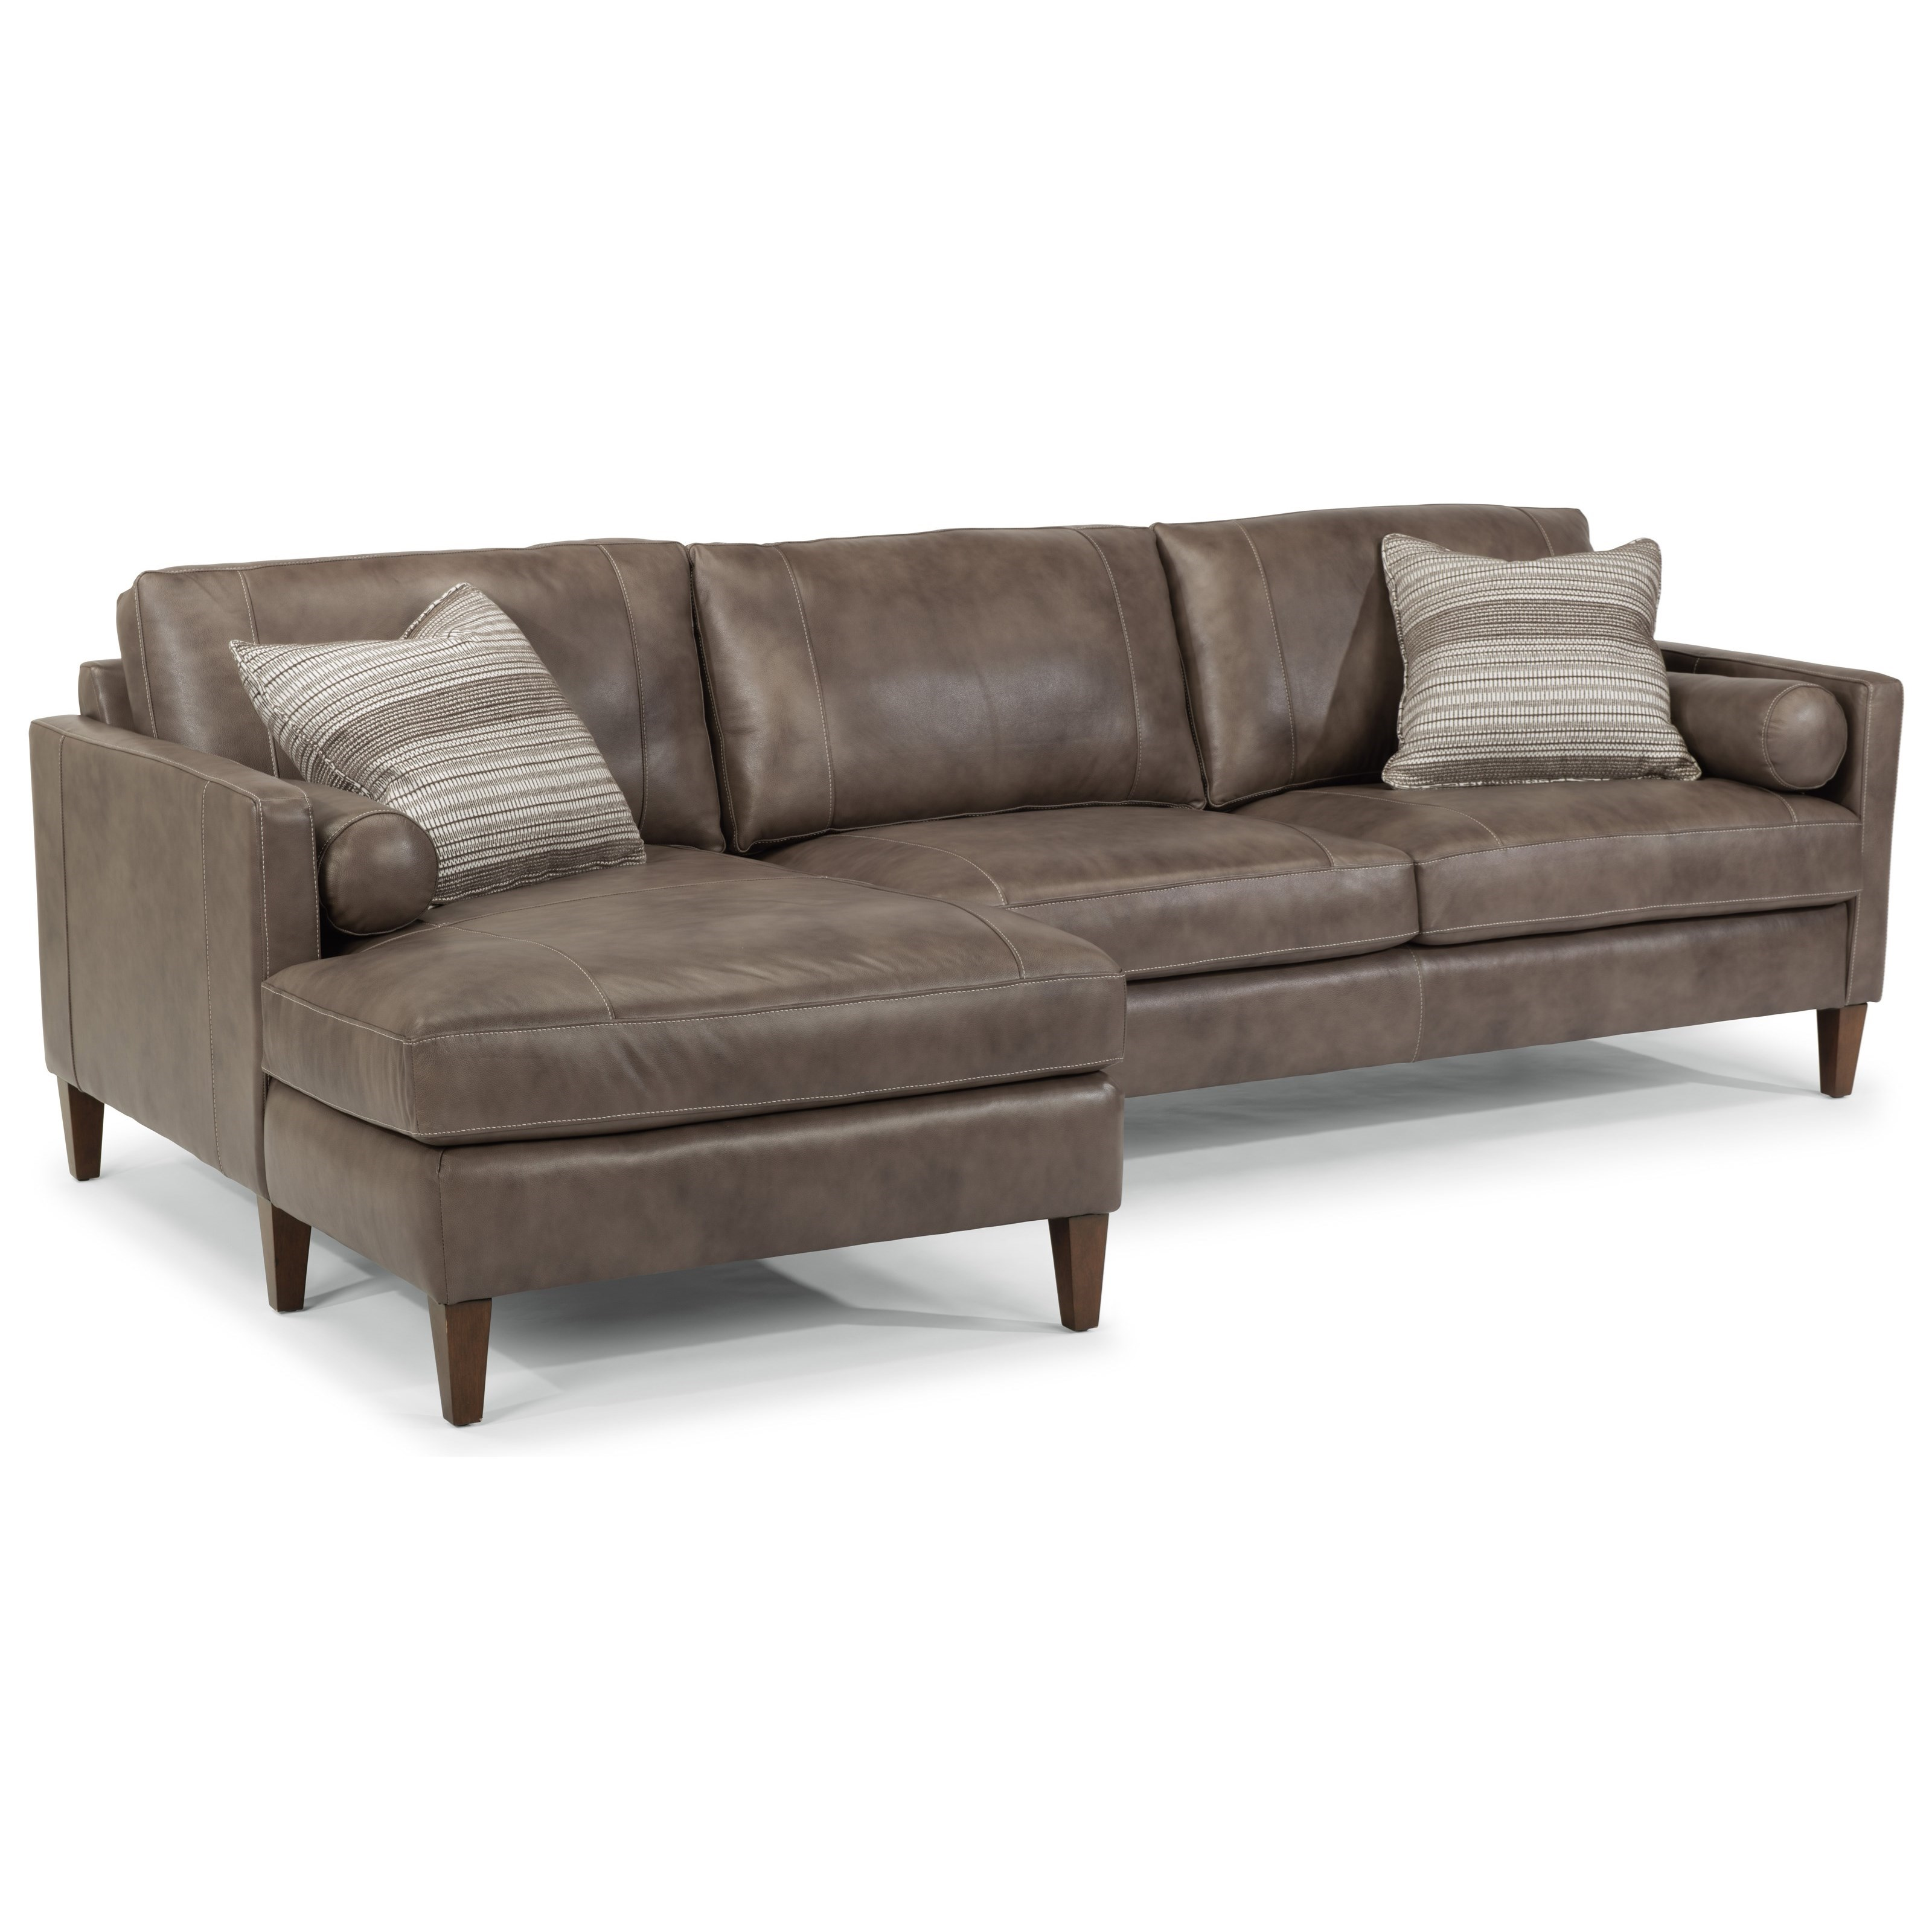 Flexsteel Latitudes-Vivian Sectional with Left Arm Facing Chaise - Item Number: 1195-25+28-474-82